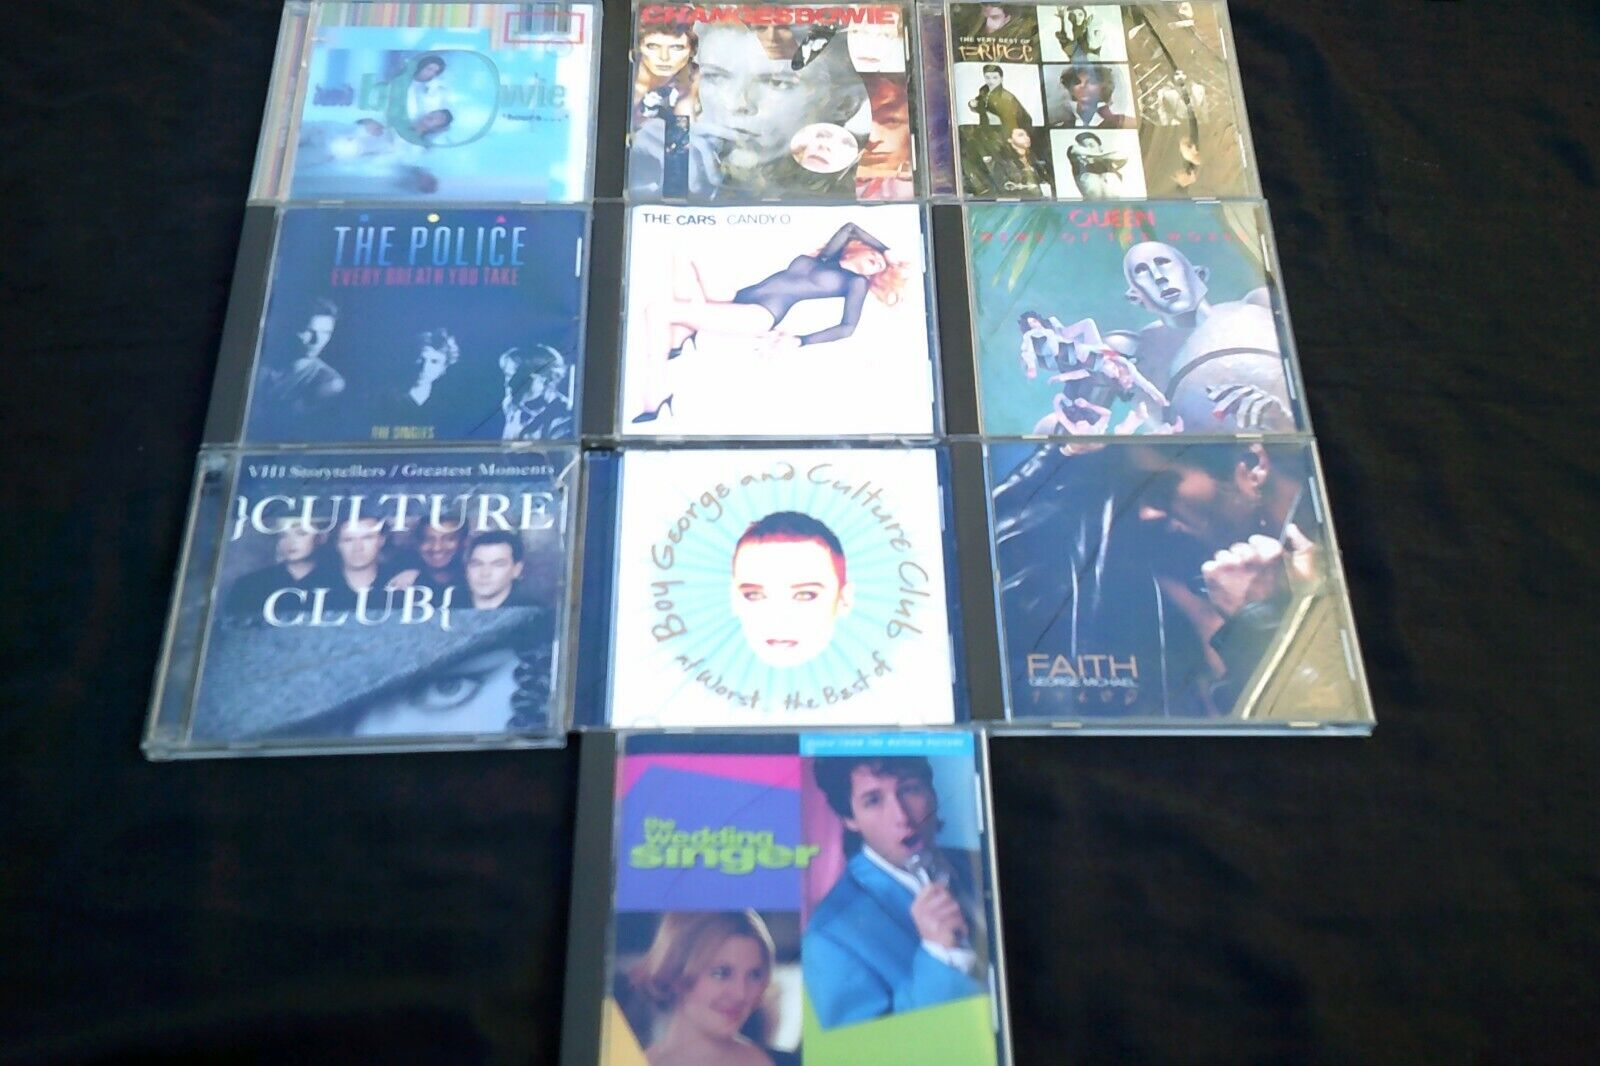 LOT Of 10 Rock 80s CD DAVID BOWIE Prince QUEEN Police CULTURE CLUB Cars BEST OF - $19.99